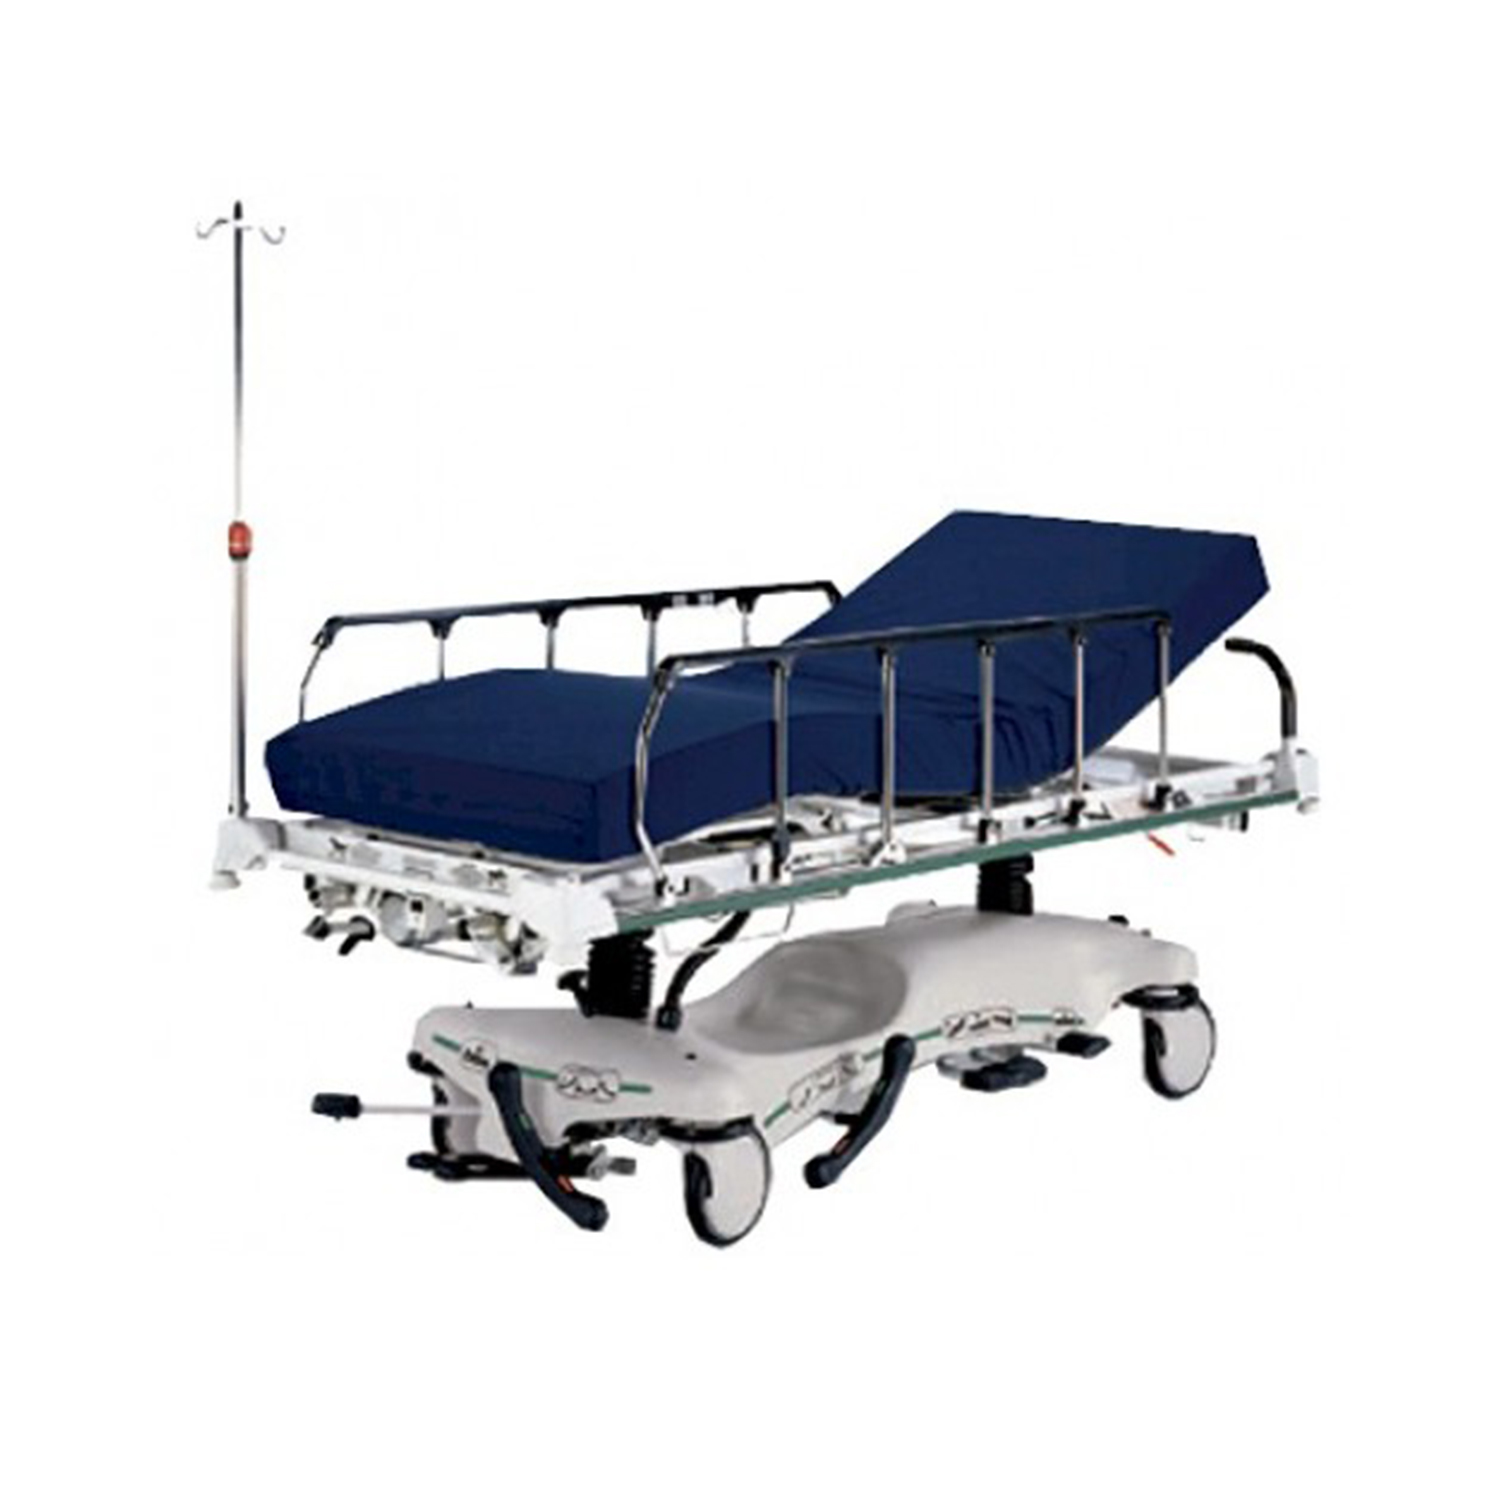 Stryker 1550 Stretcher with Electric Knee and Back